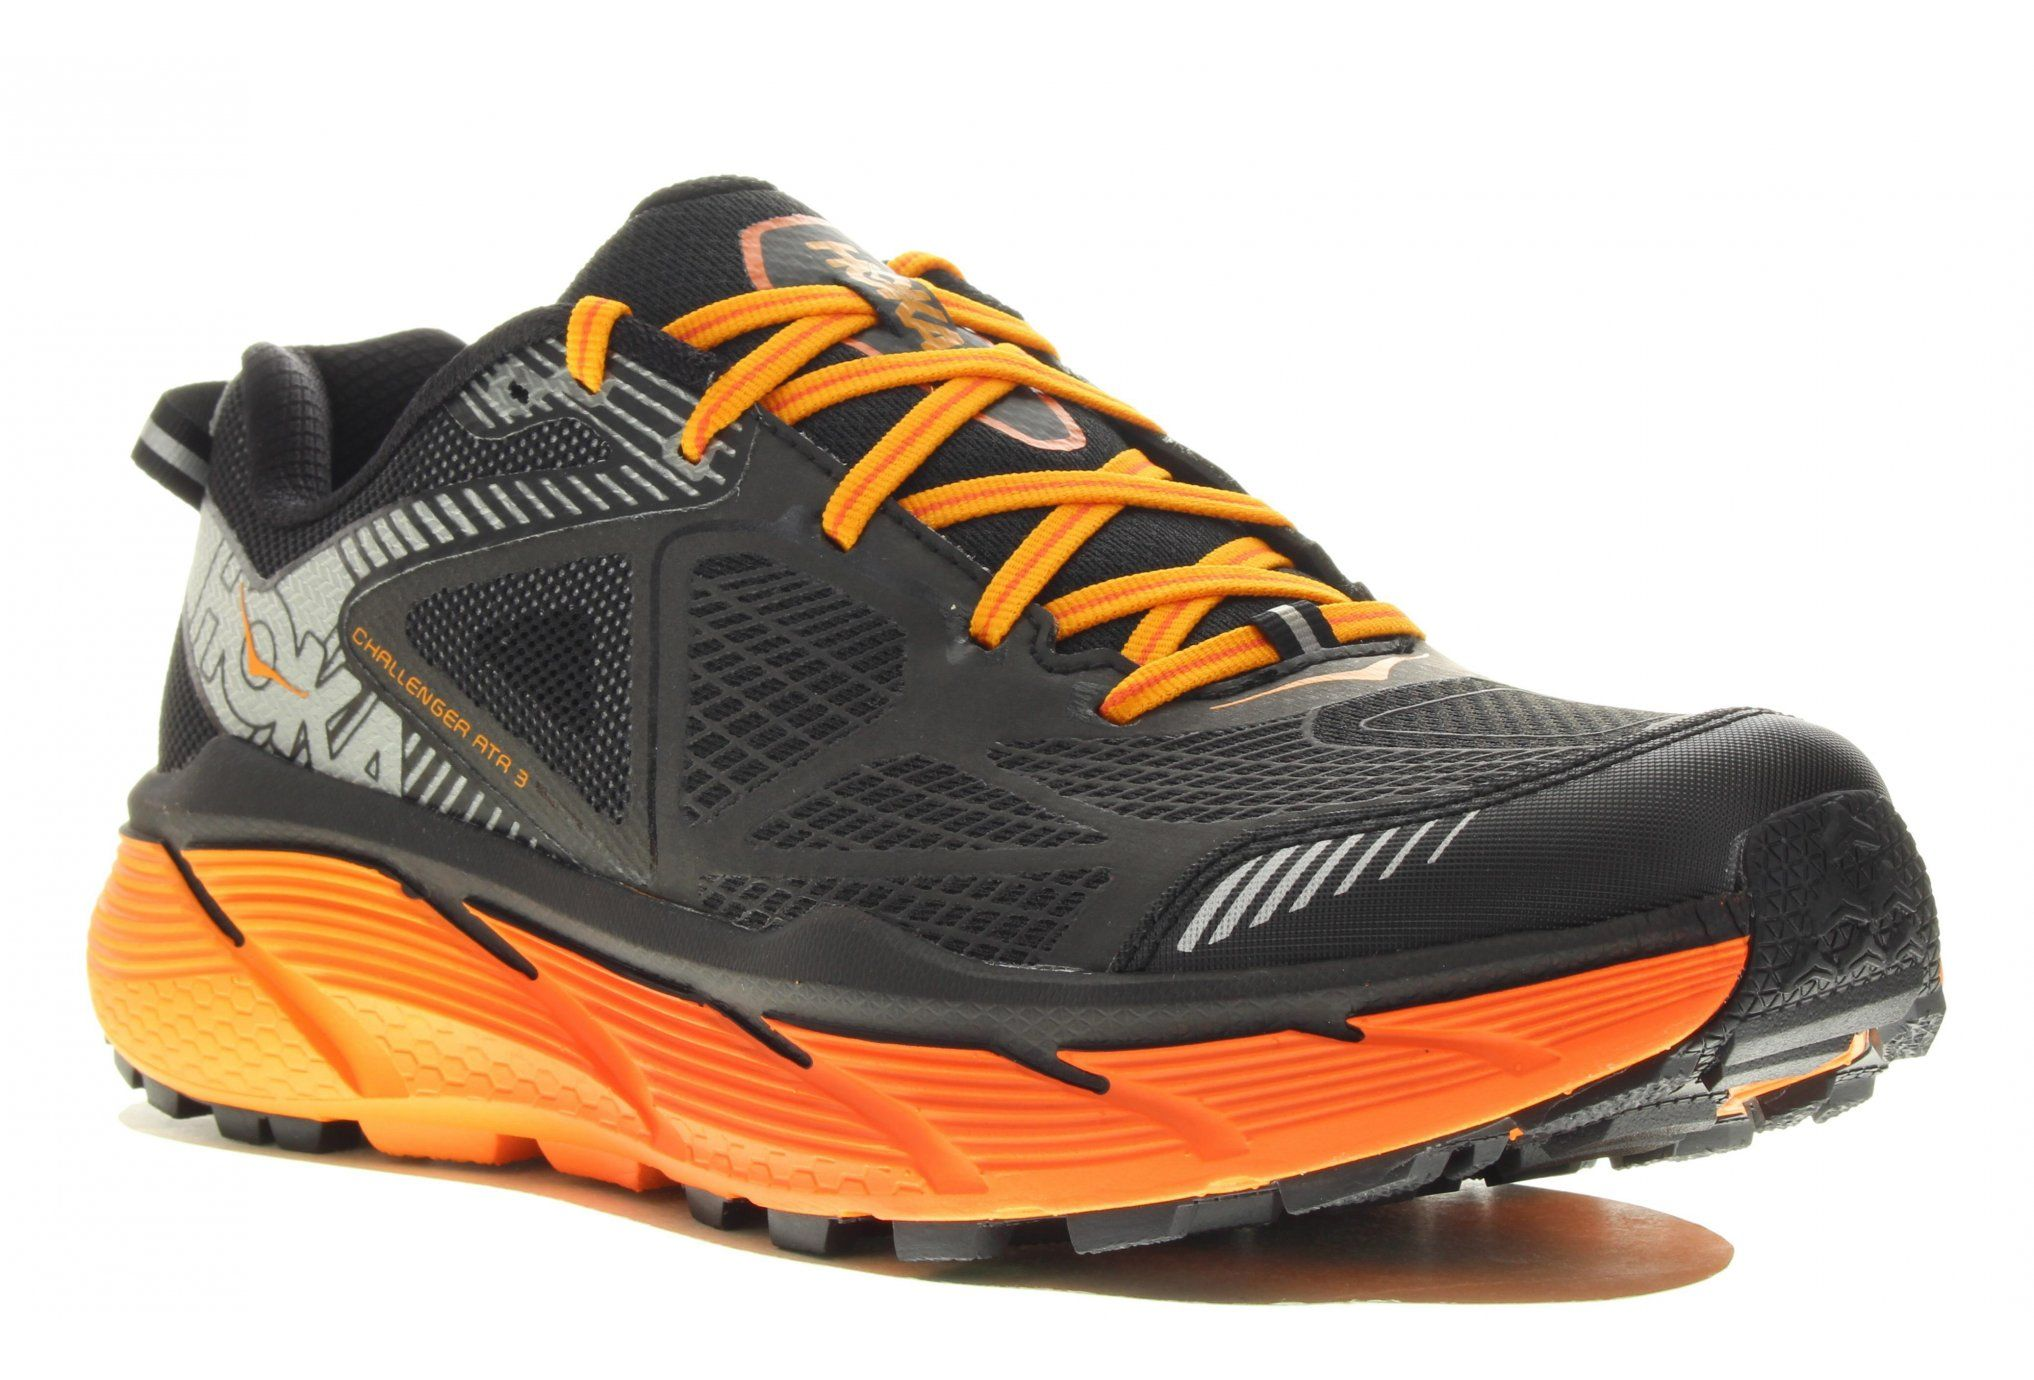 Chaussures de Trail Homme HOKA one one Challenger ATR 3